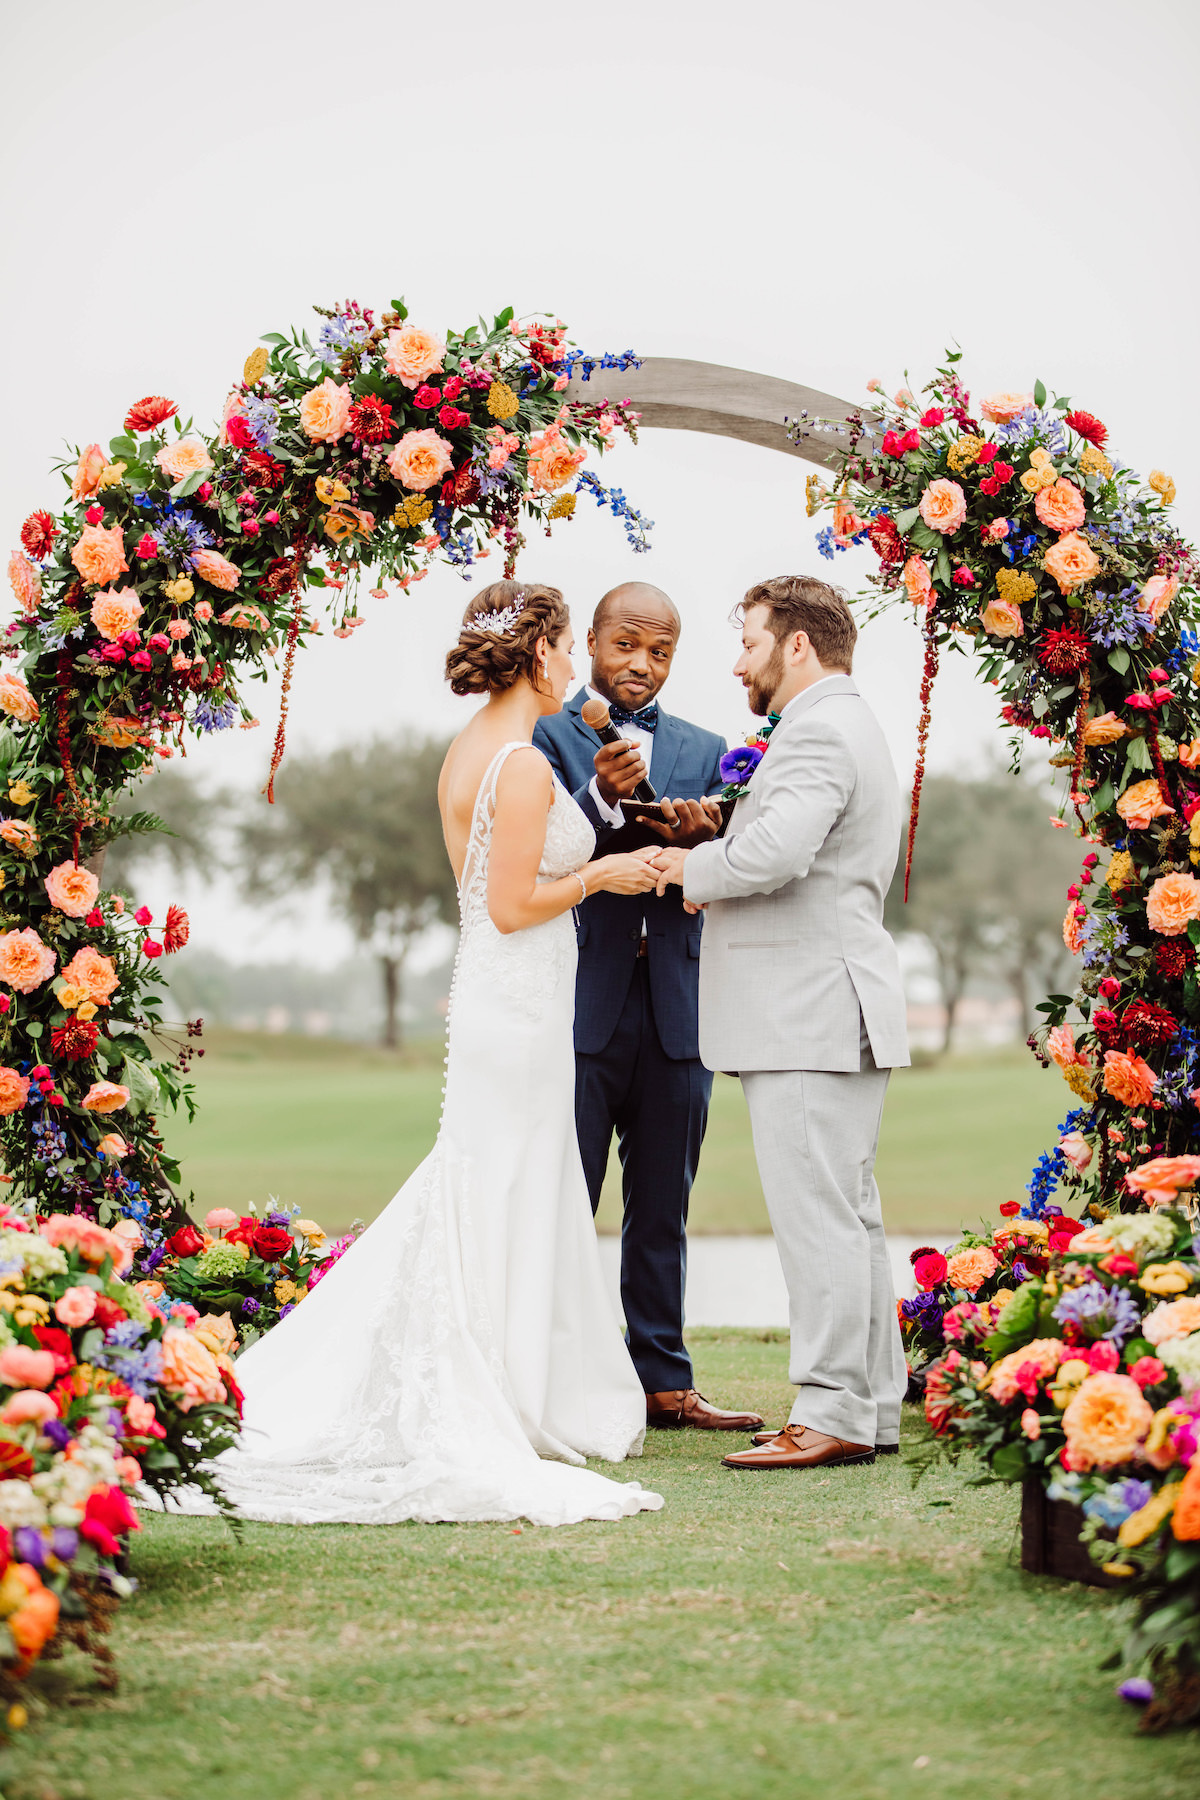 Outdoor wedding ceremony decor with colorful flowers - Bohemian Road Photography